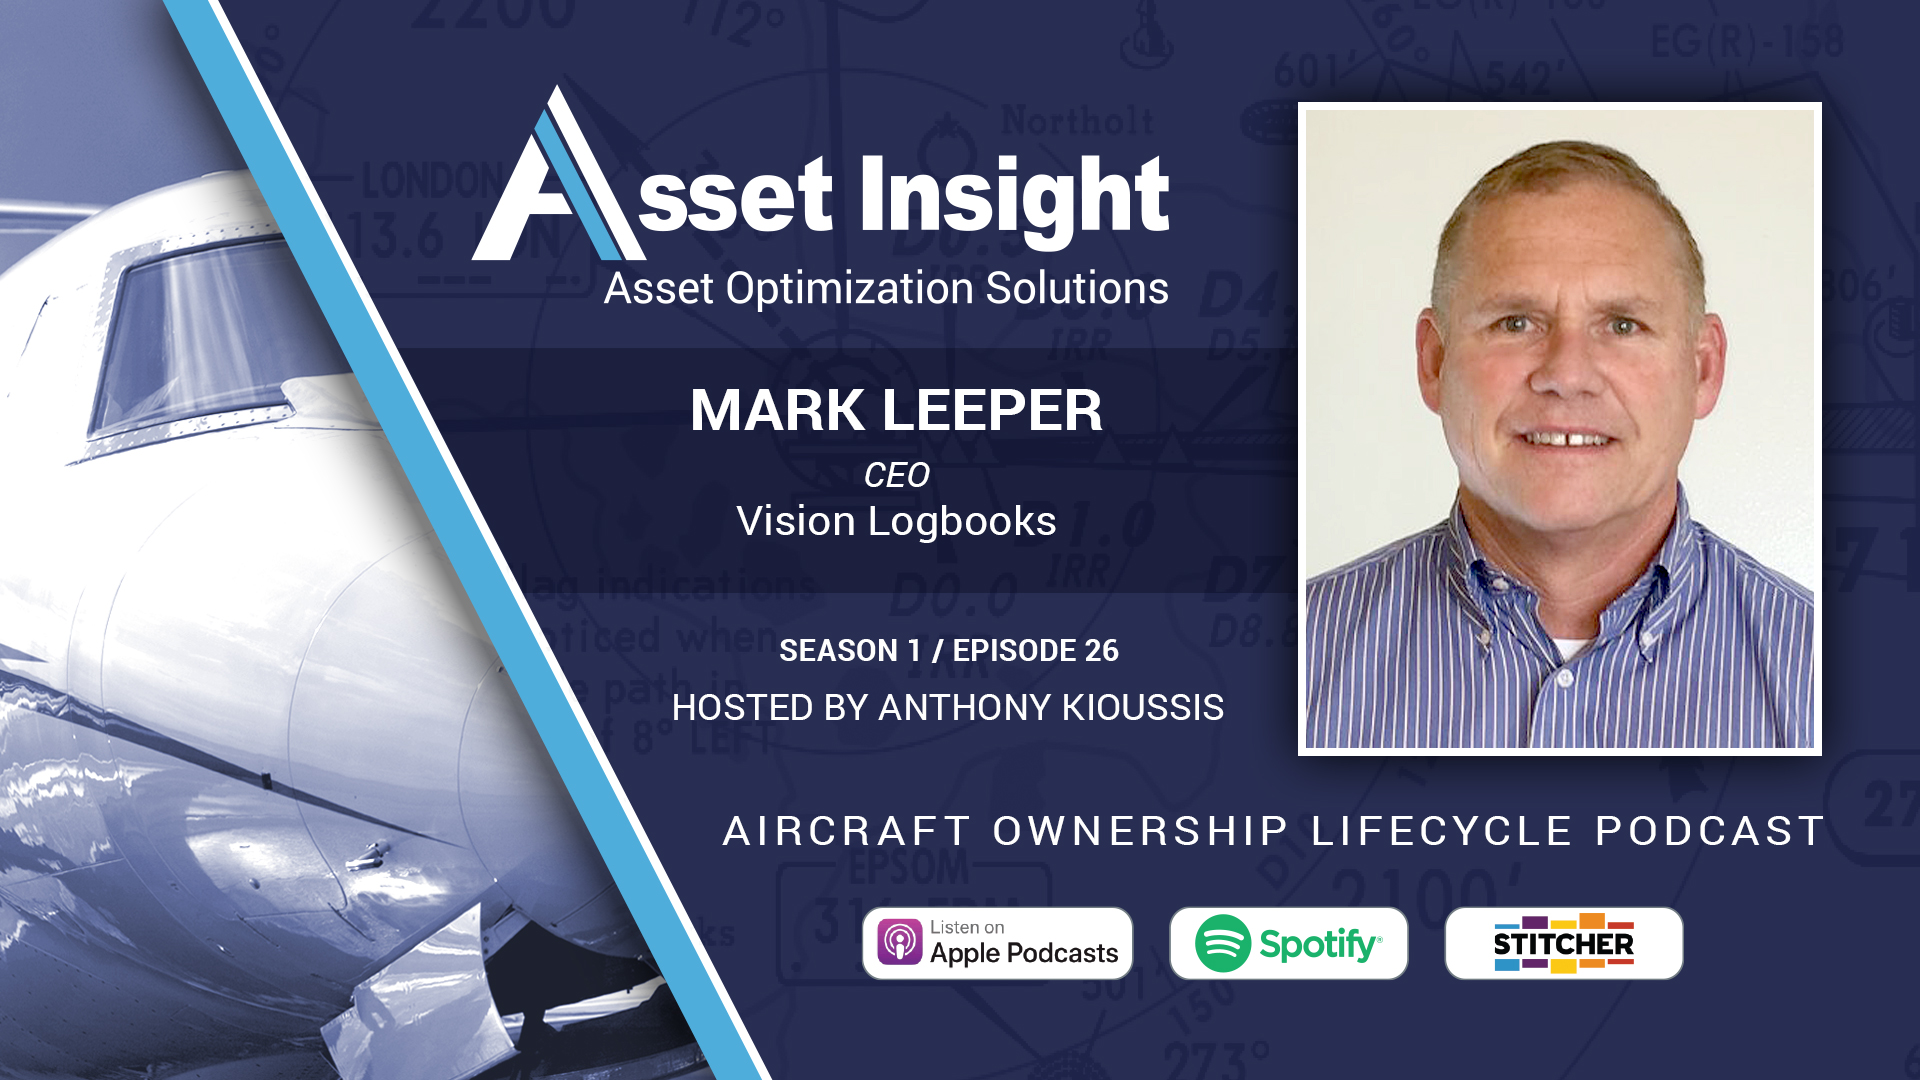 Mark Leeper, CEO, Vision Logbooks